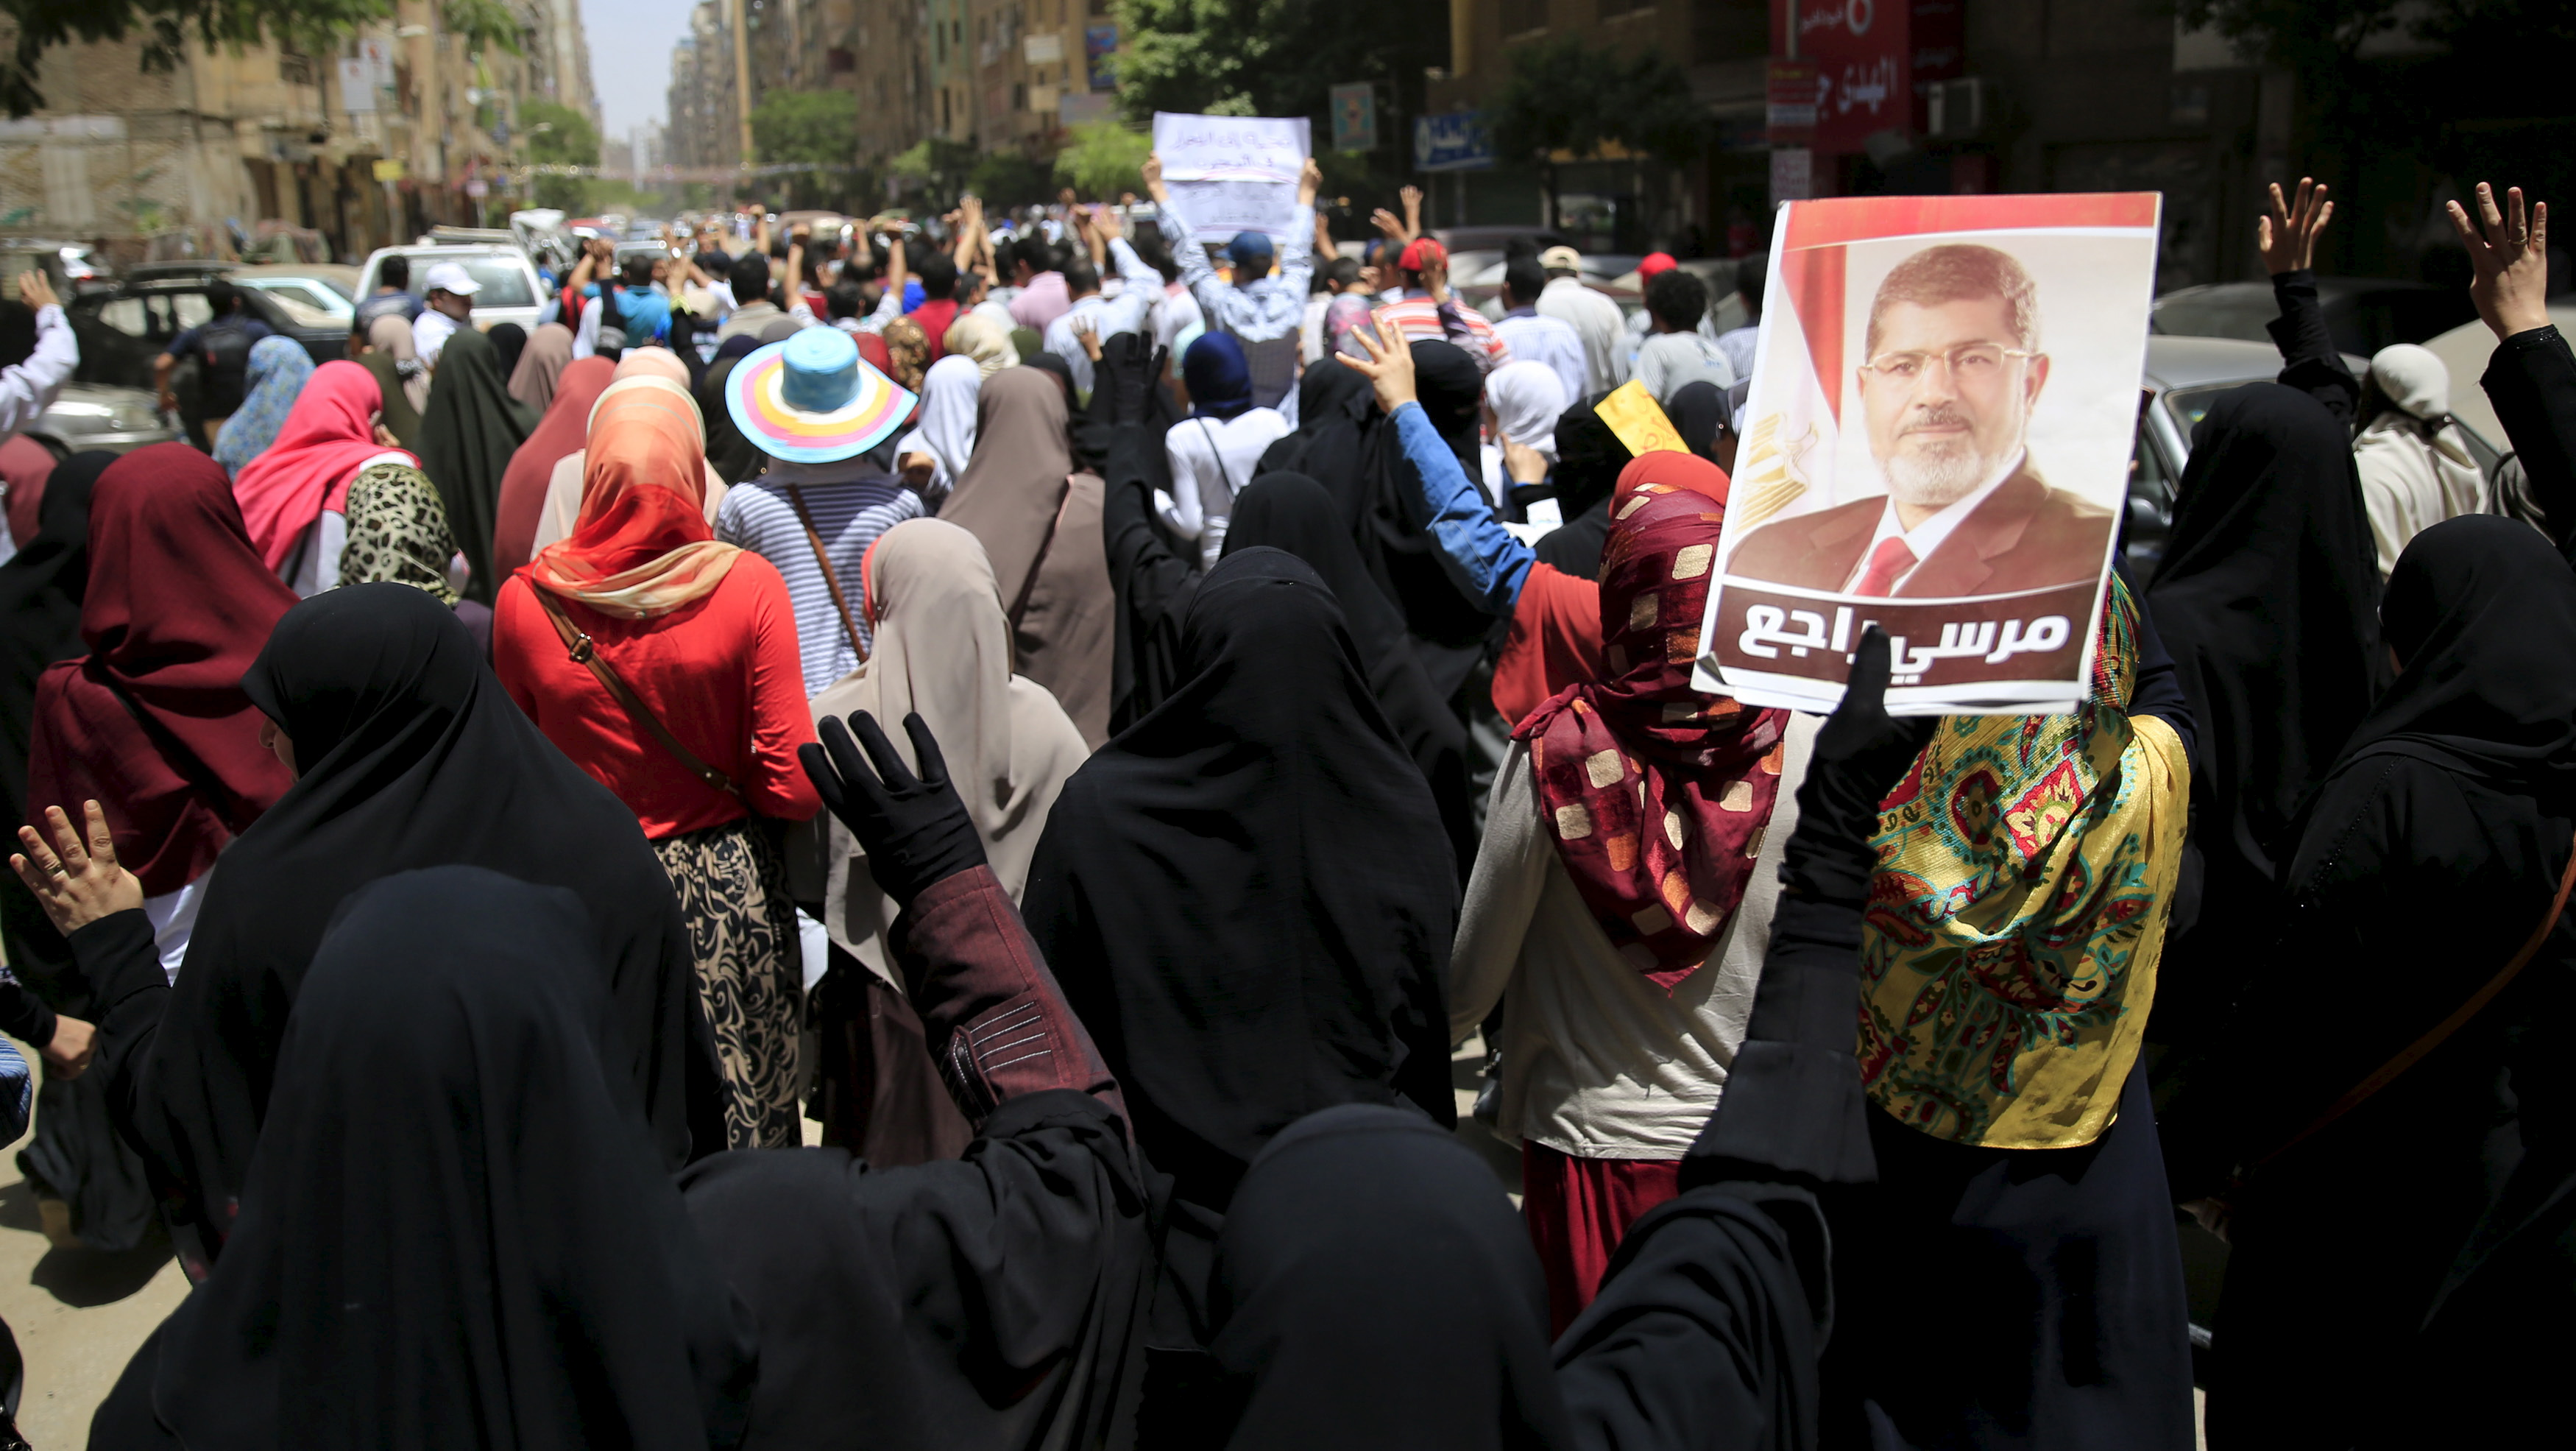 essays on the muslim brotherhood The low turnout in egypt's presidential election, held may 26 and 27, indicates that crushing the muslim brotherhood did not translate into political credibility for candidate and former army chief abdel fattah el sisi.